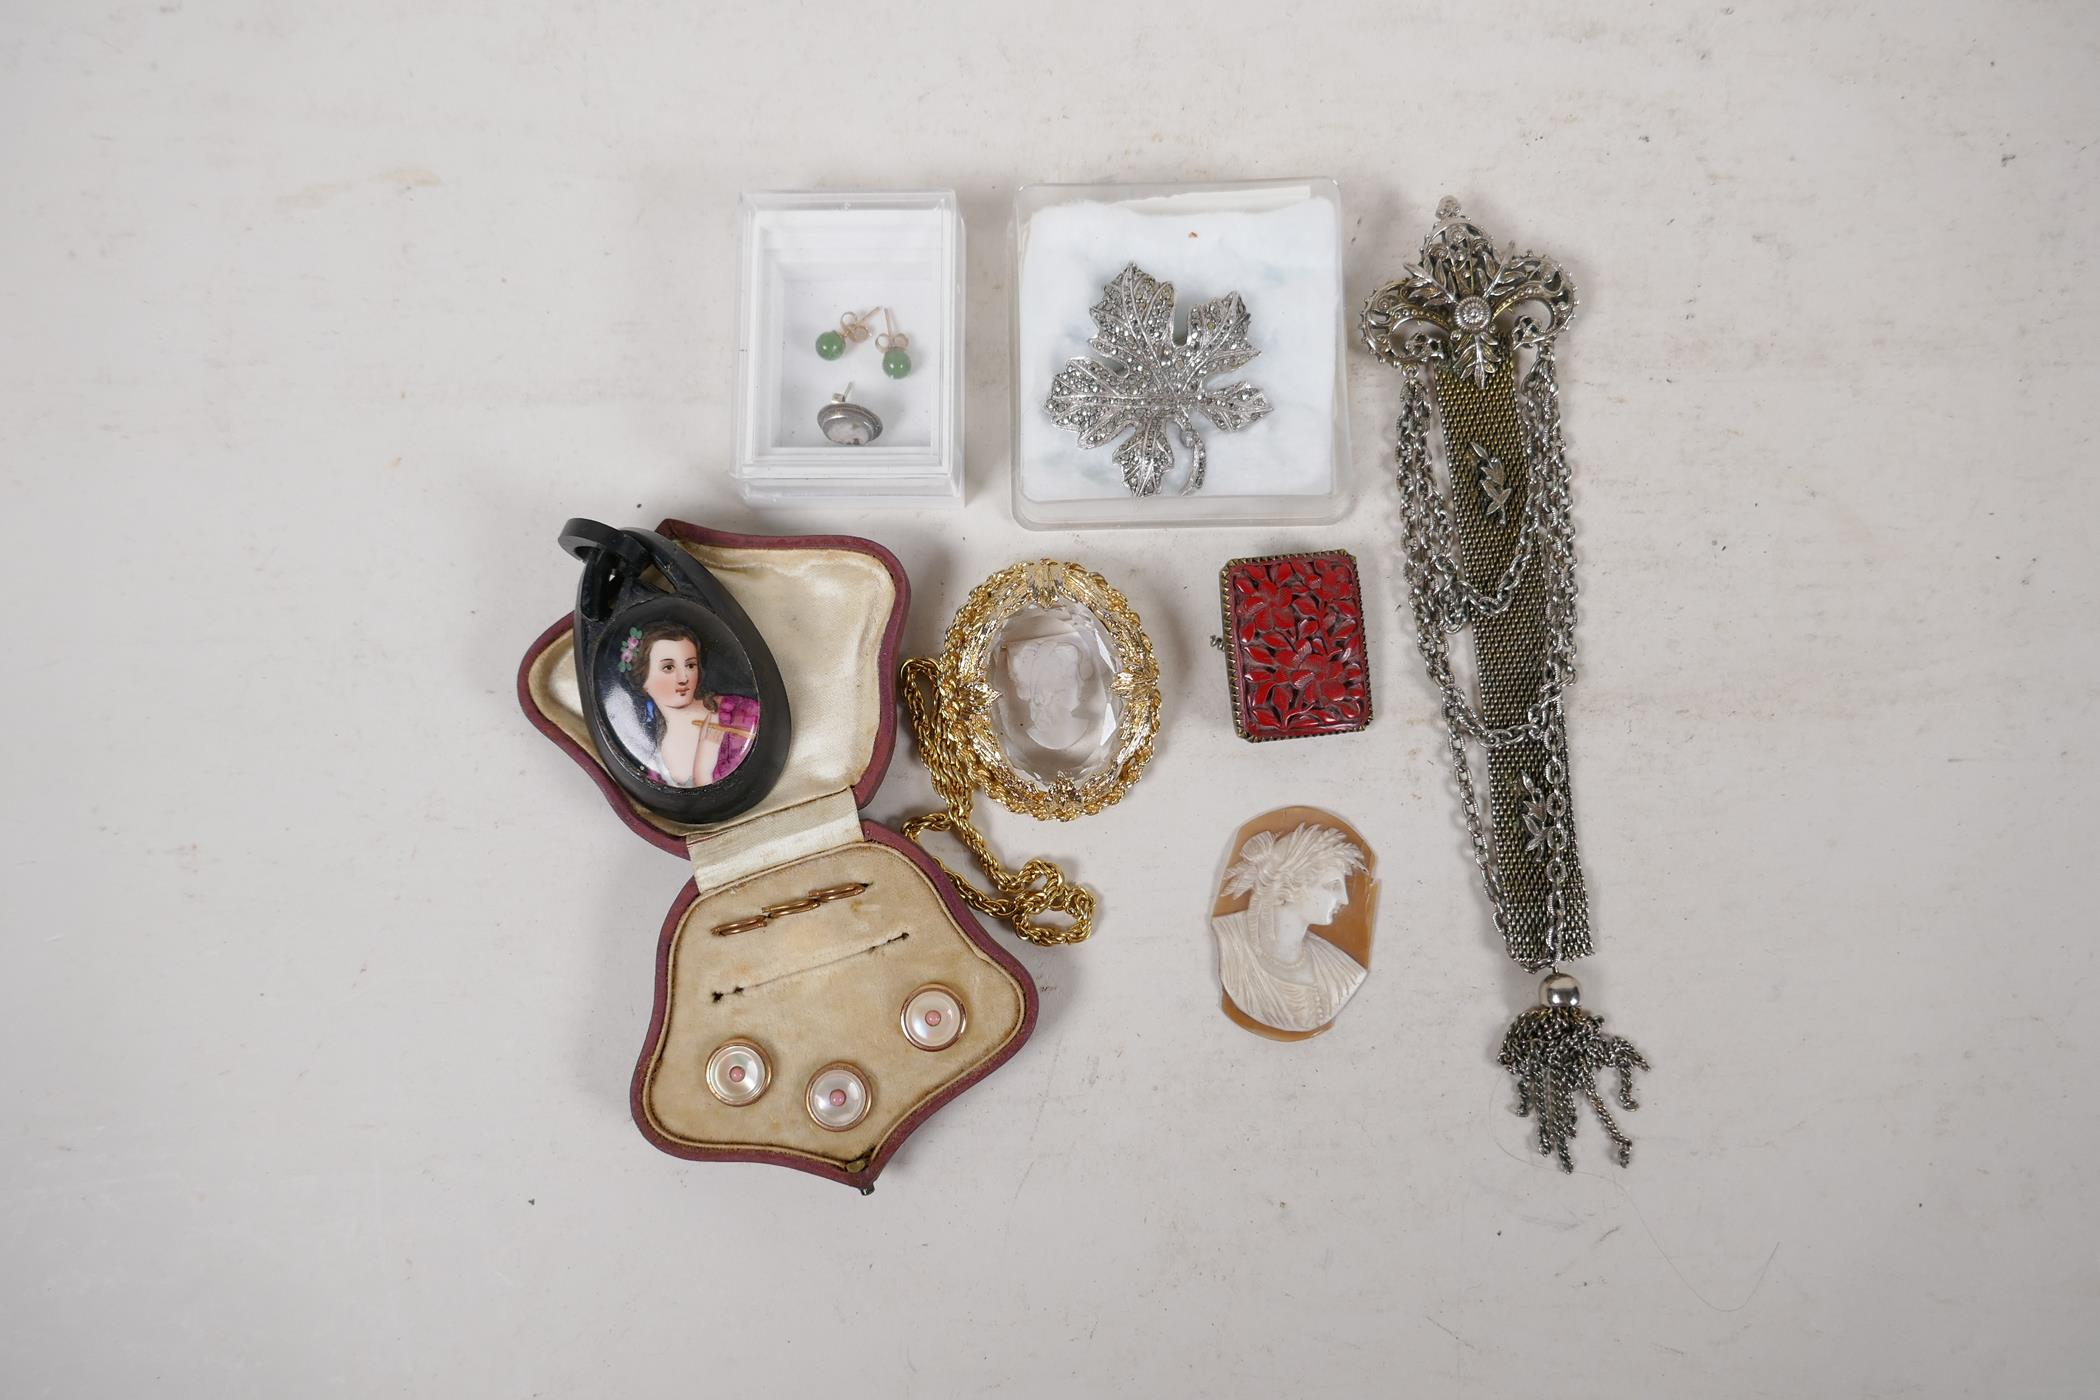 A pair of silver gilt and jade bead stud earrings, an unmarked white metal chain pendant brooch, a